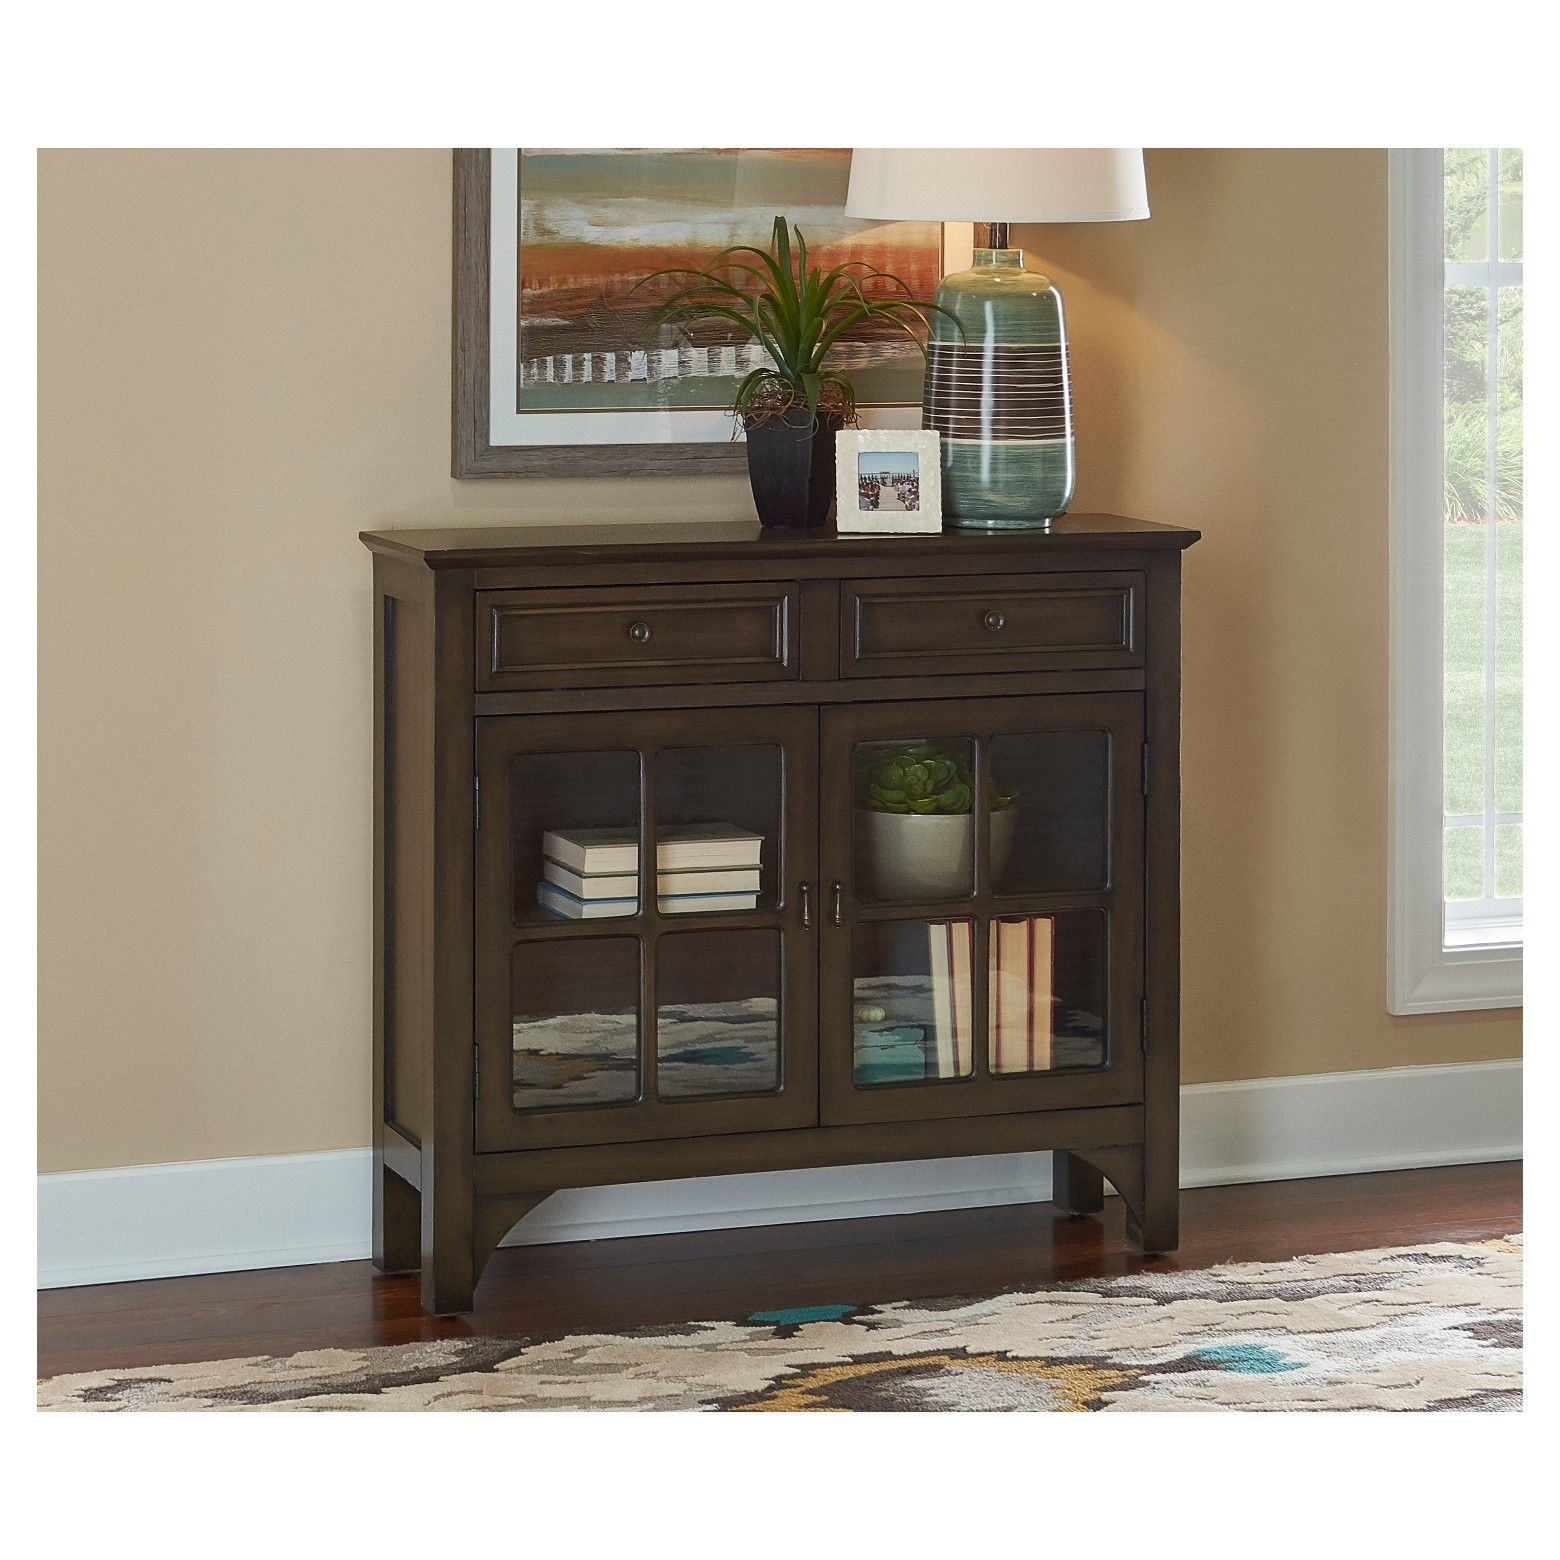 Powell pany Campbell Console Table Oak Grove Collection